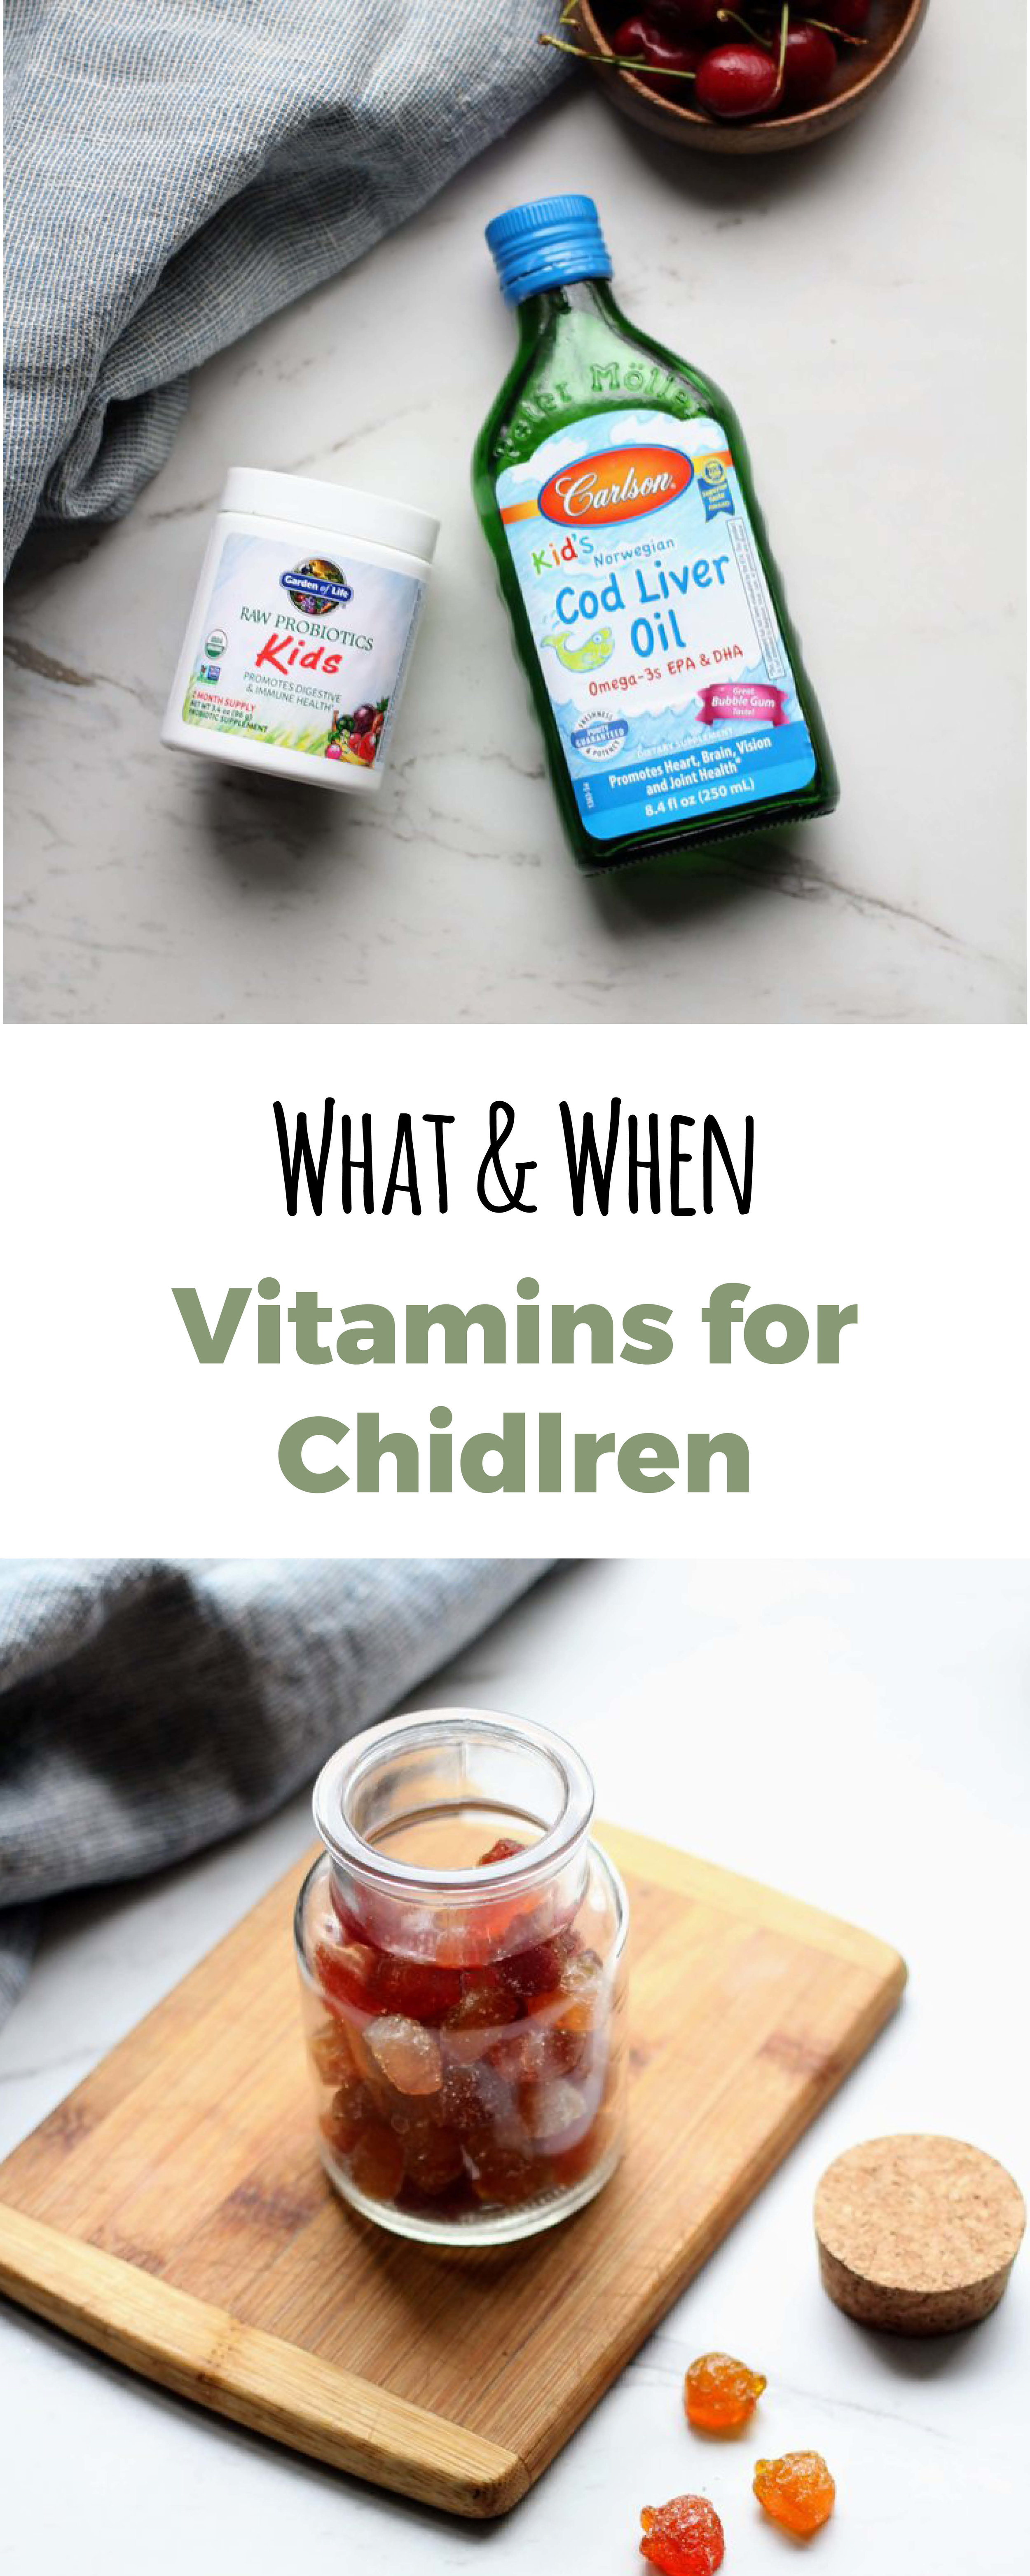 Get all your vitamin questions about your children answered. When should you give them vitamins, do they need them, what brands should you buy?